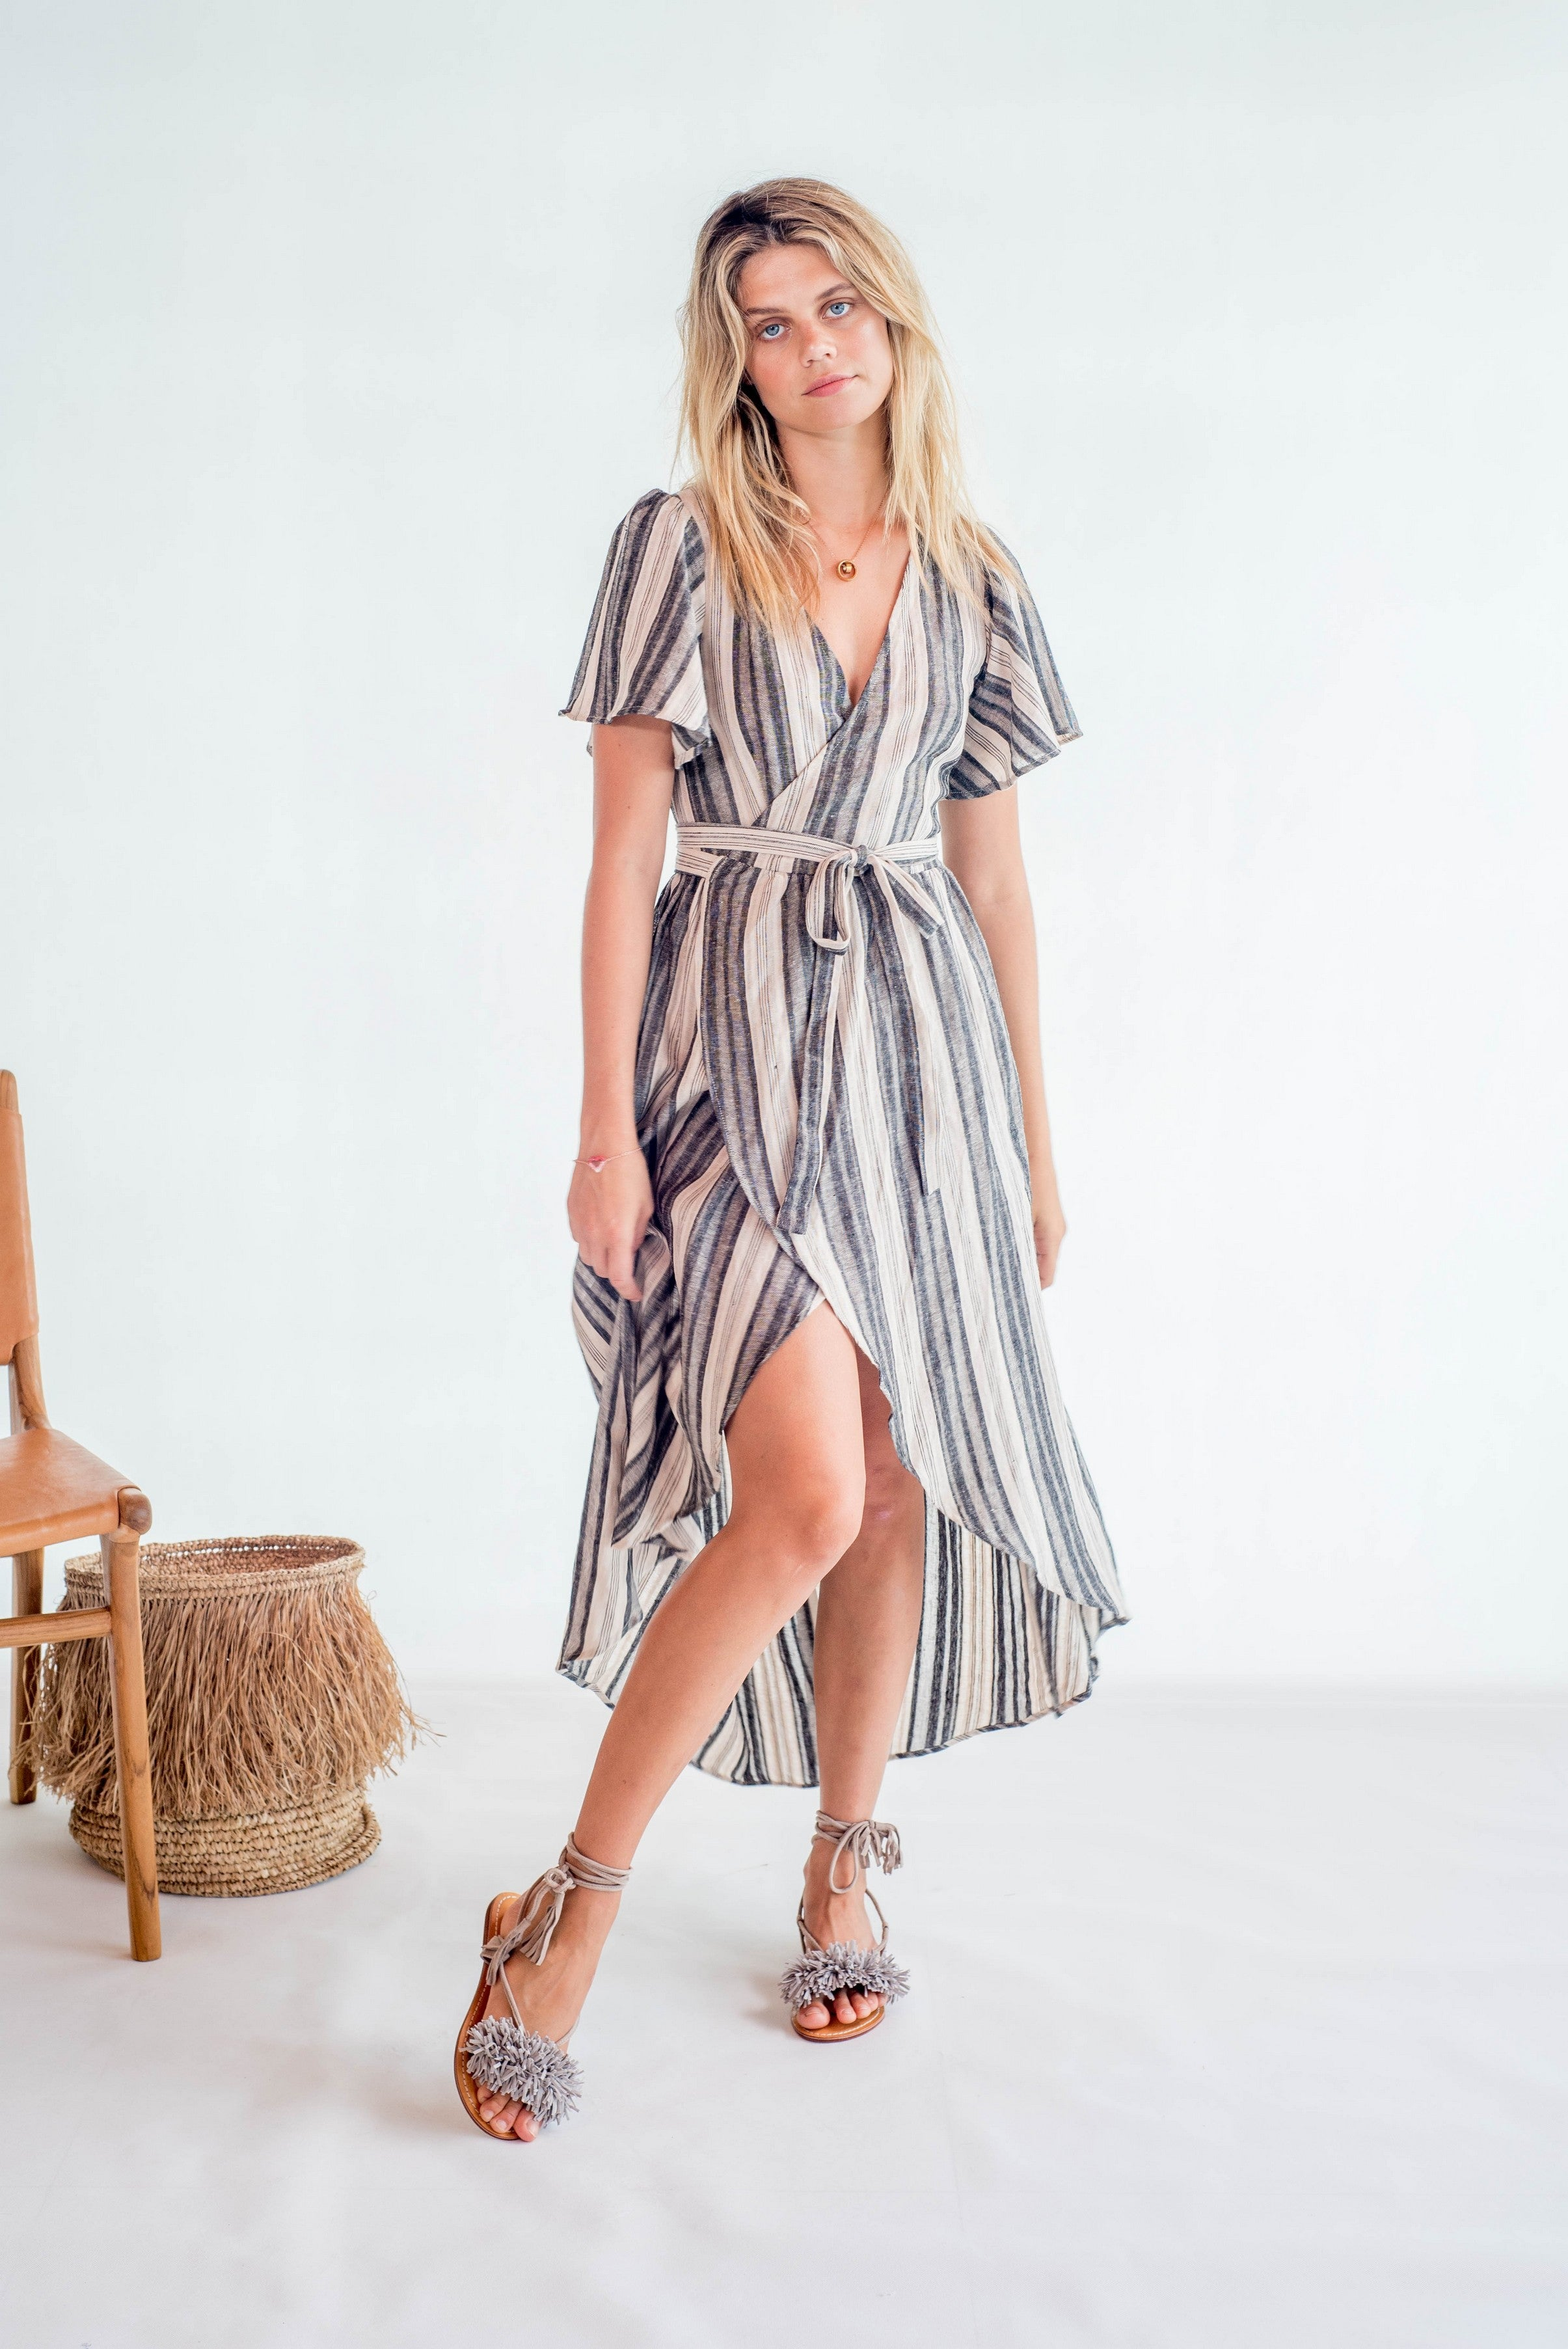 La Confection - Avalon - Wrap Kimono dress in Linen Stripe Natural and Grey